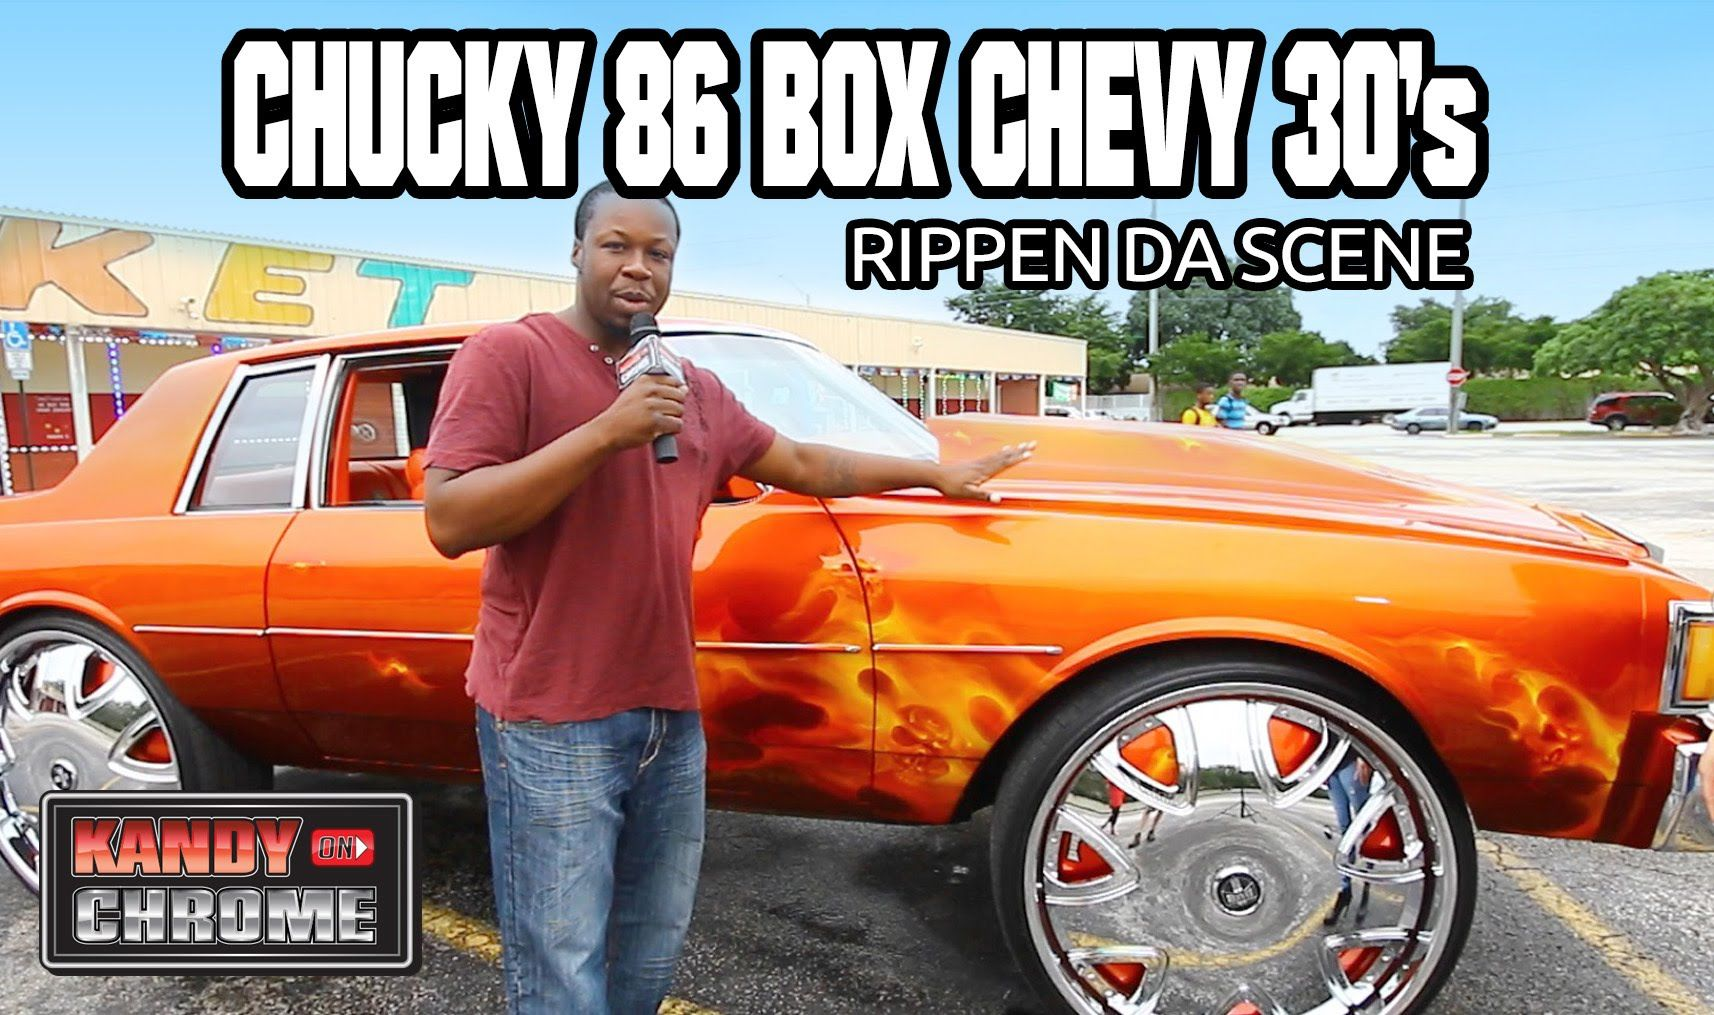 hight resolution of 1986 box chevy on 30 s chucky